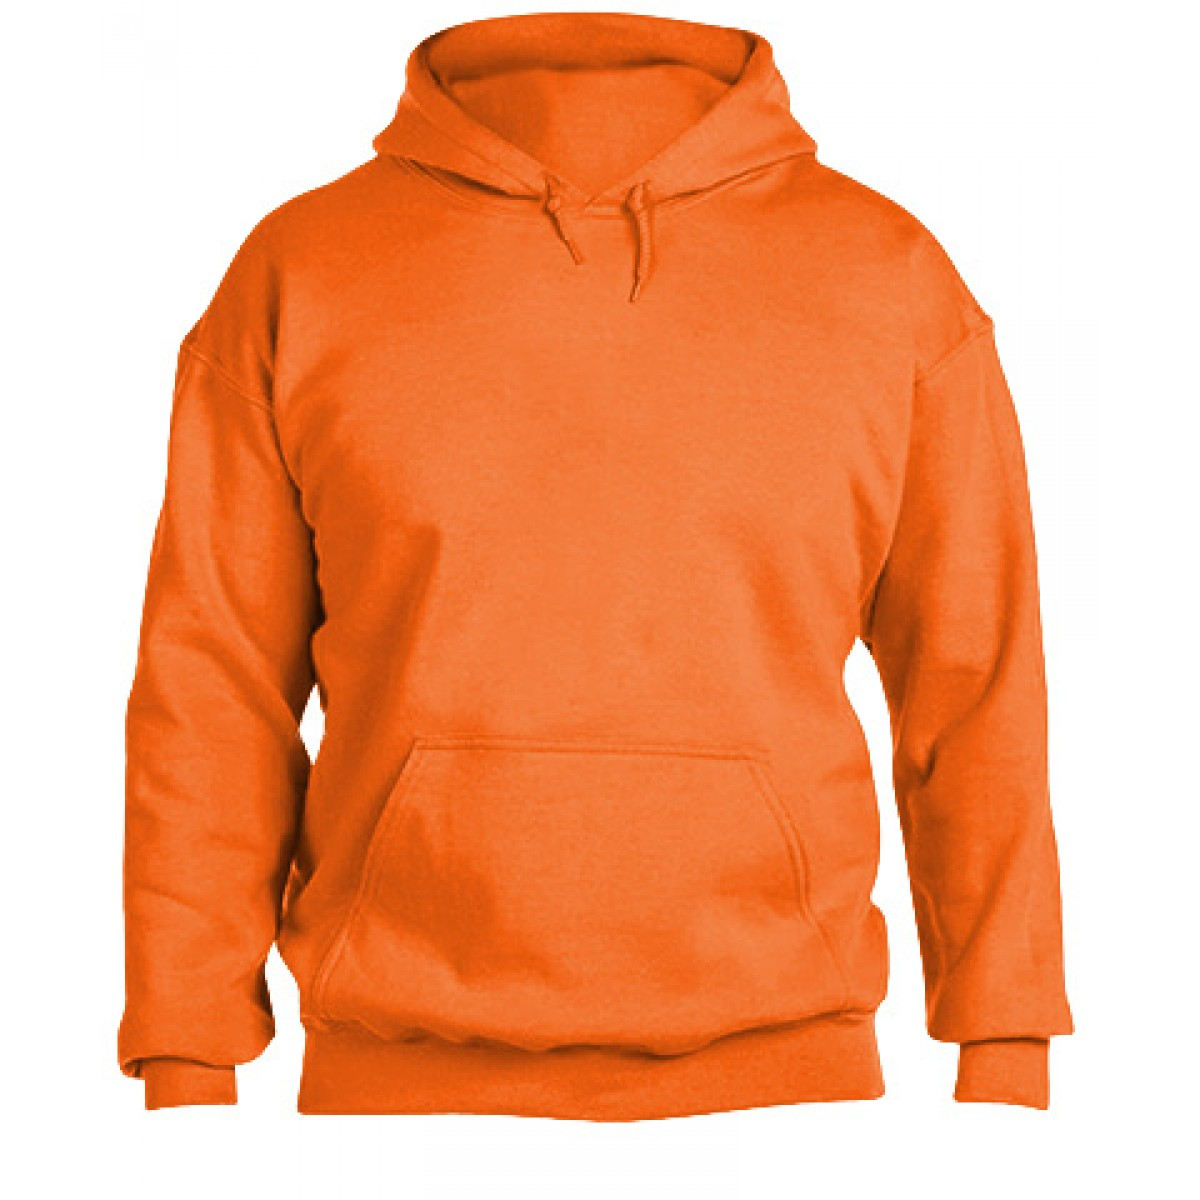 Solid Hooded Sweatshirt  50/50 Heavy Blend-Safety Orange-S